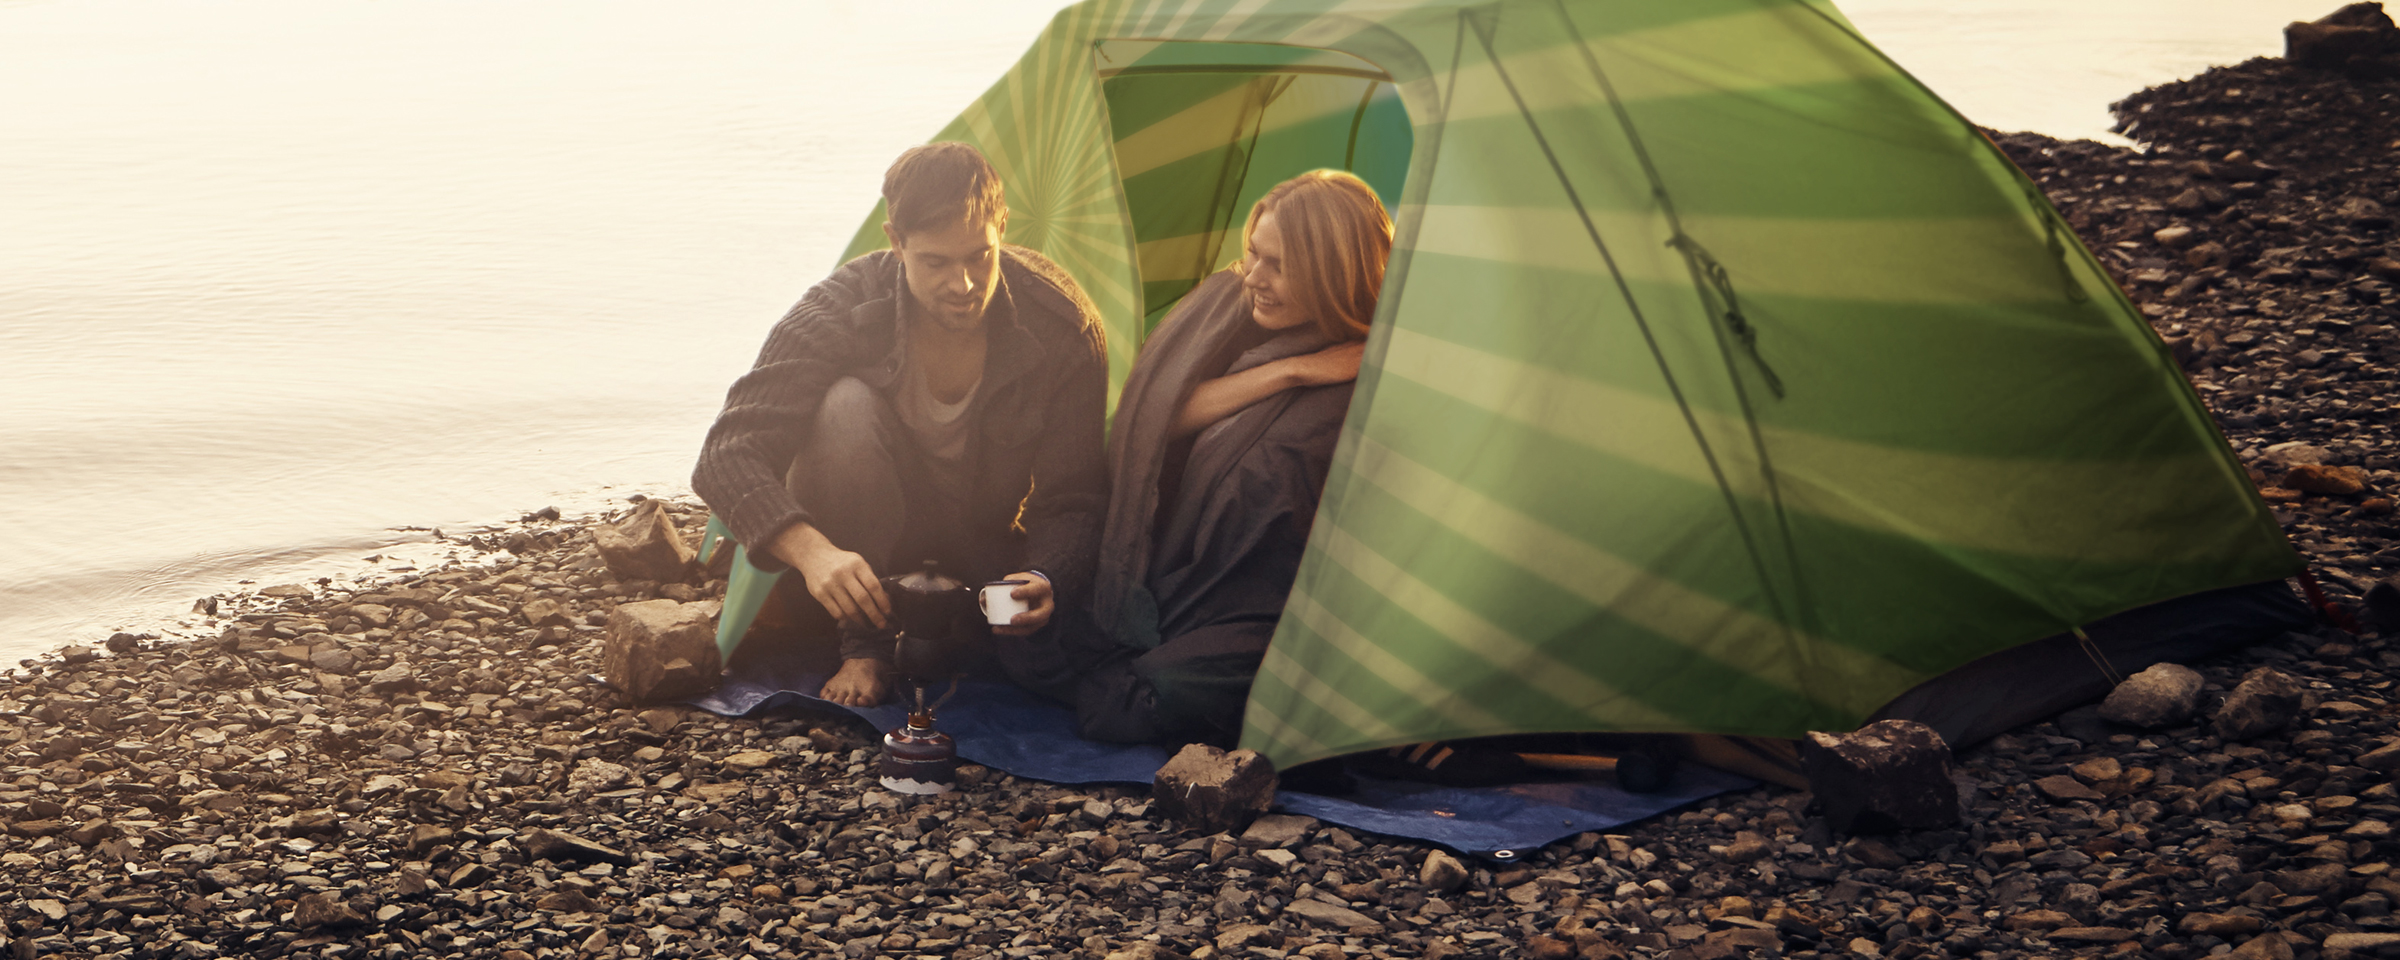 man and women sitting in camping tent by a lake